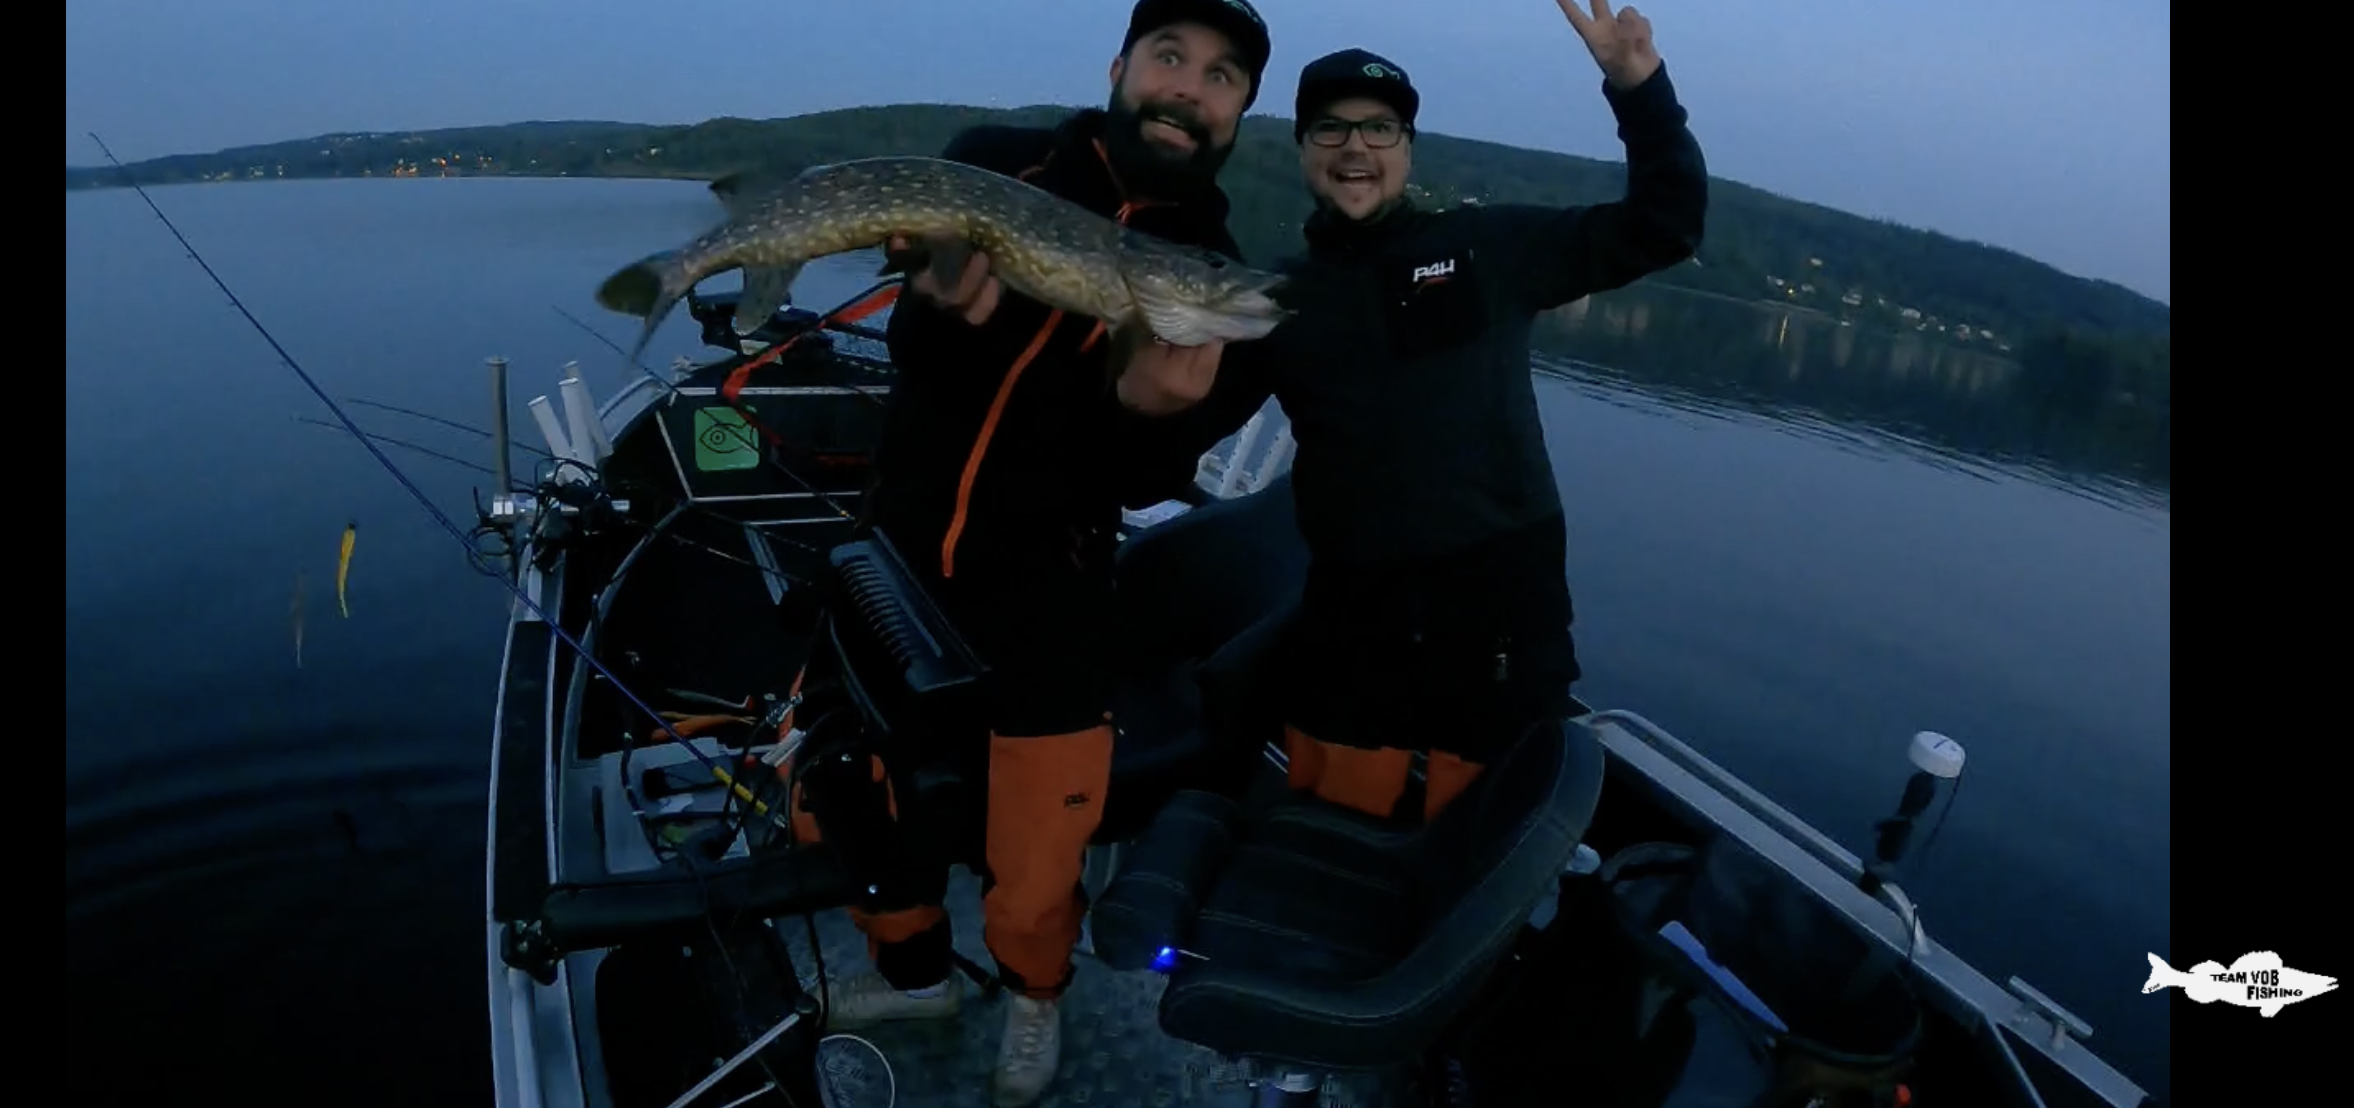 Livefishing with Team VoB on DVR 2021-09-09 20:05:04